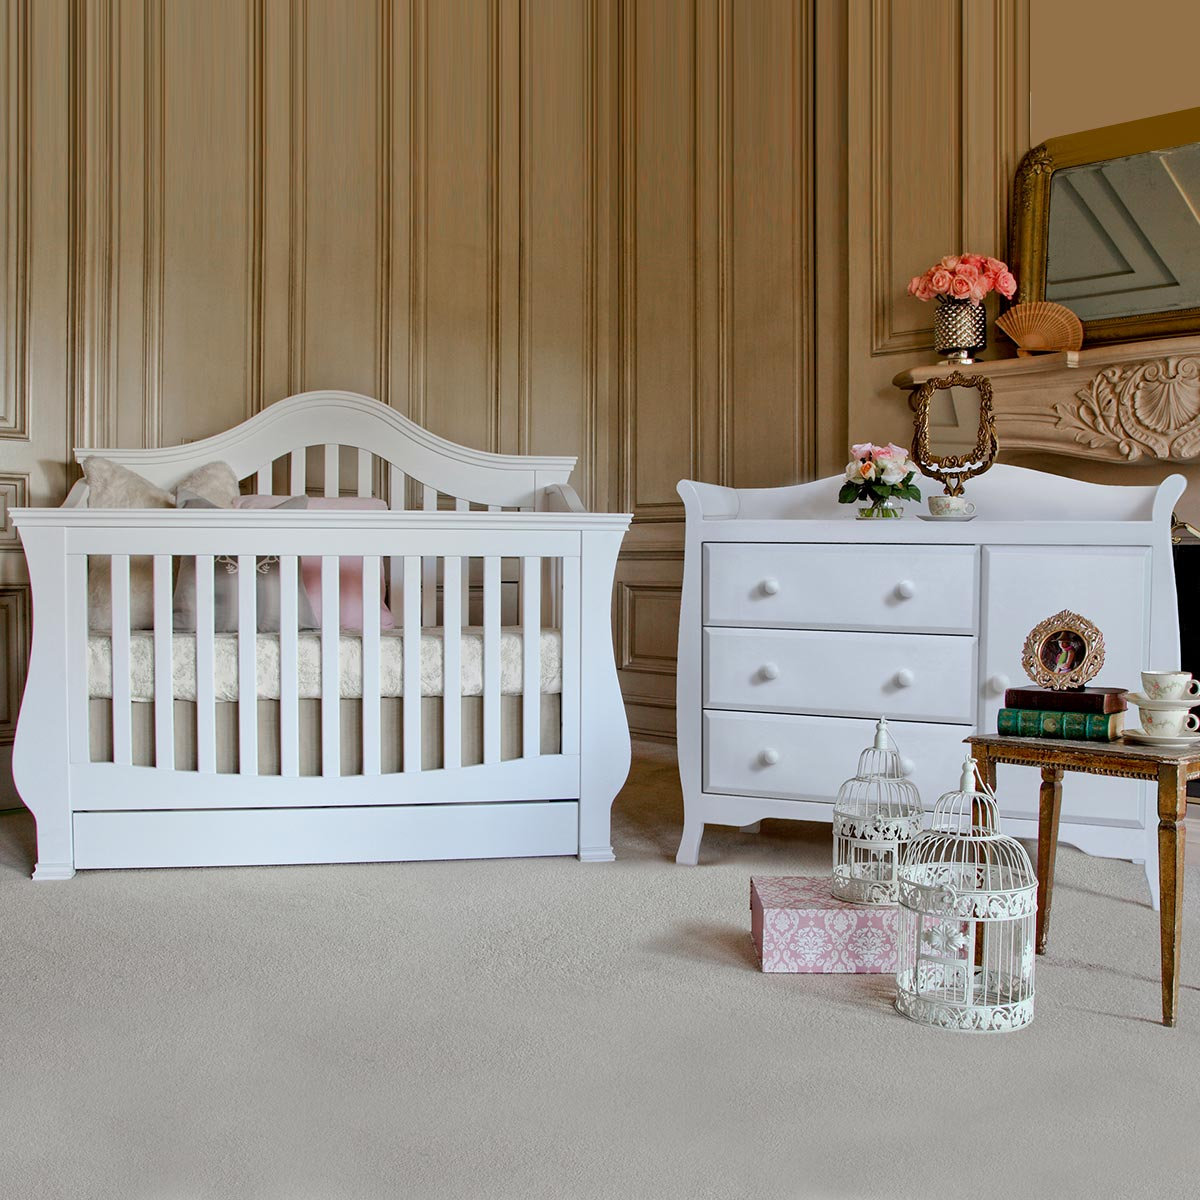 million dollar baby 2 piece nursery set ashbury 4in1 sleigh convertible crib and combo dresser in white free shipping - White Baby Crib